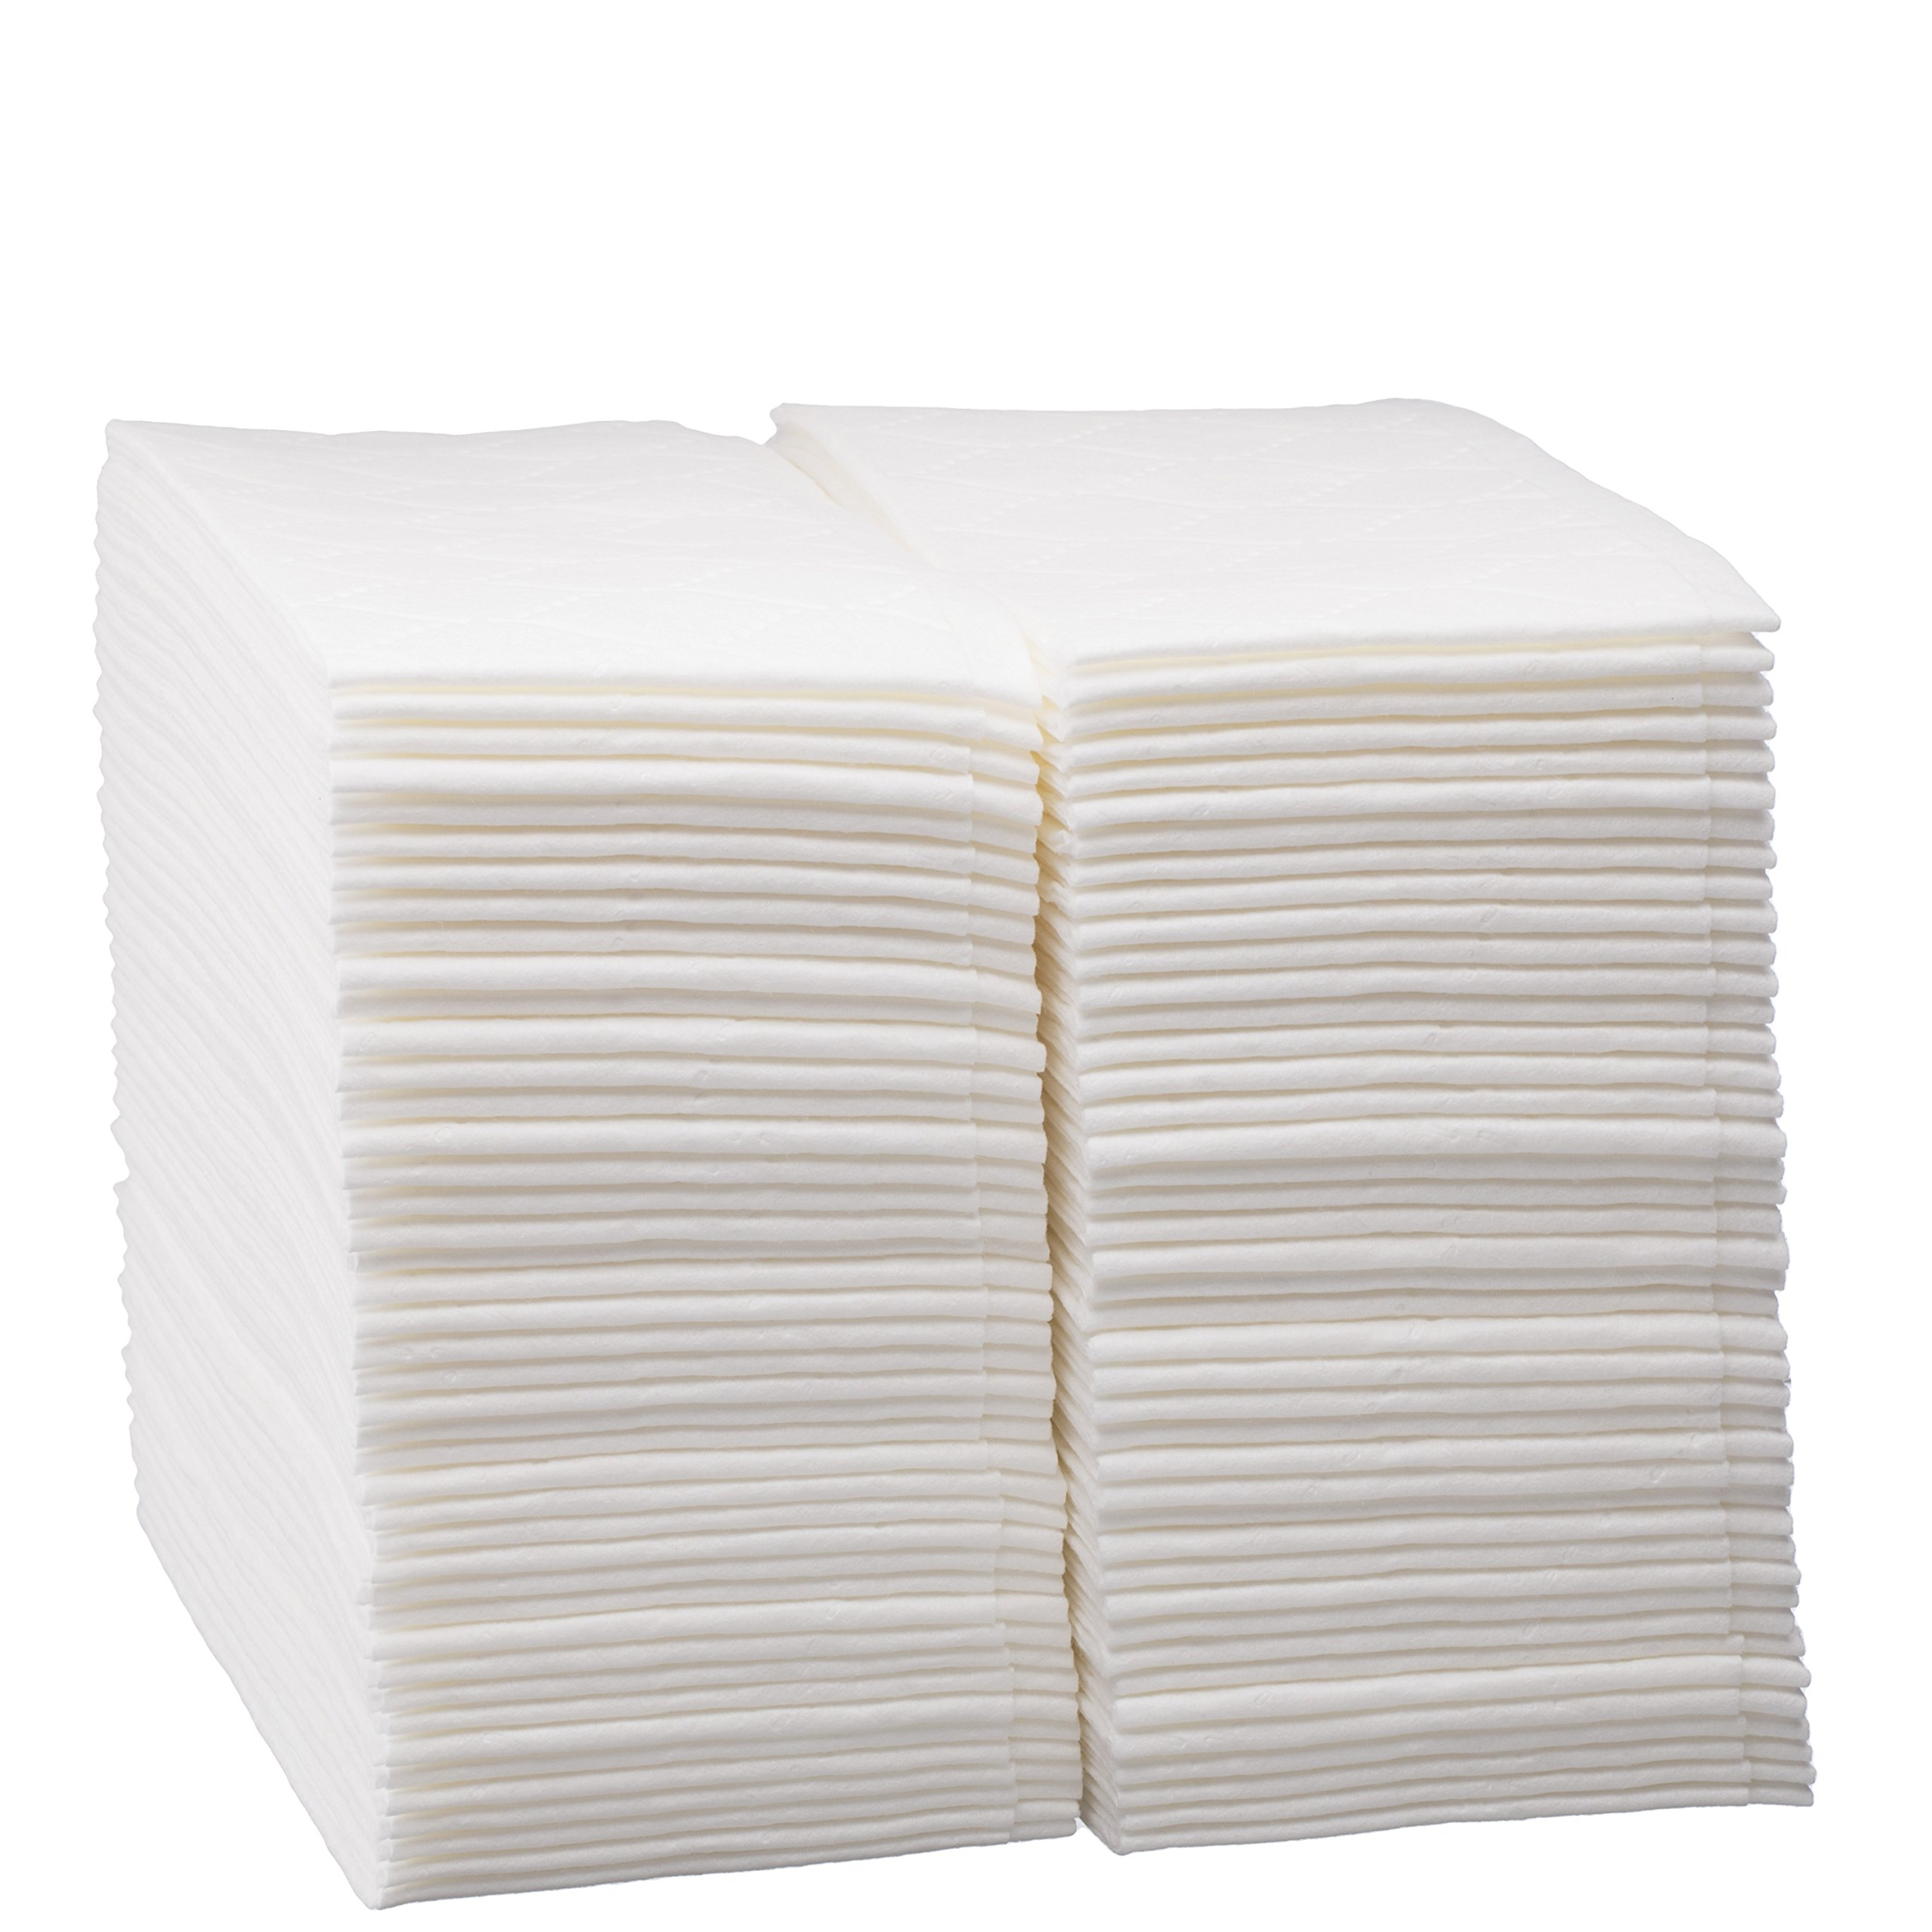 Luxury Linen Feel Disposable Guest Hand Towels in Bulk, Soft & Absorbent Cloth Like Paper Napkin for Bathroom, Kitchen, Weddings, Parties, Dinners or Events, White 100 Count by eDayDeal (200)